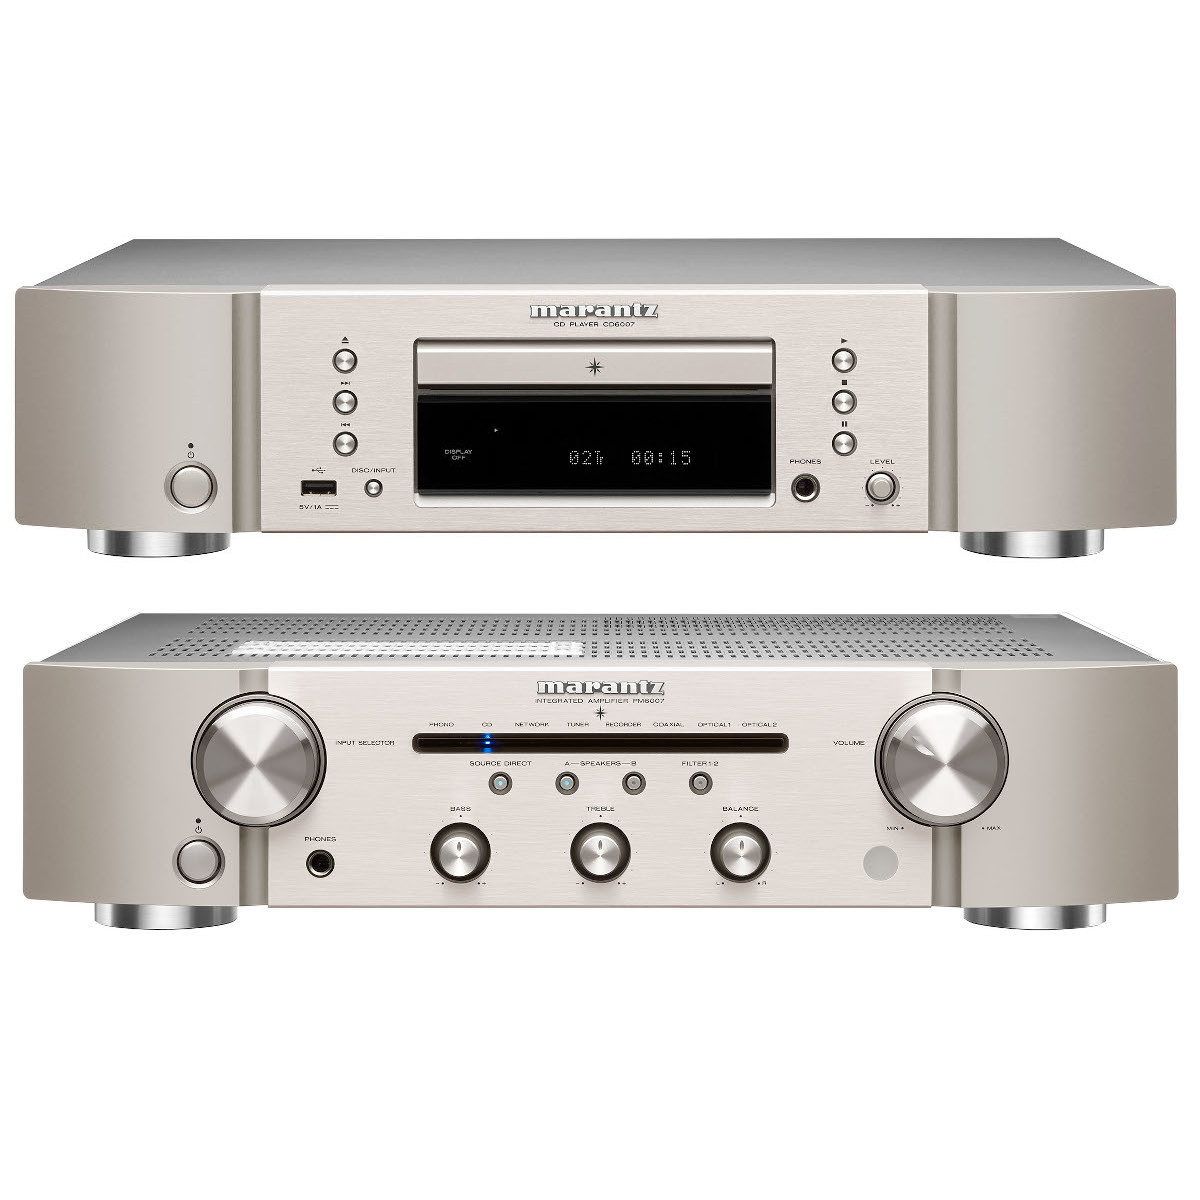 Marantz Set PM 6007 Amplifier with Phono and DA Converter and CD 6007 CD Player silver/gold